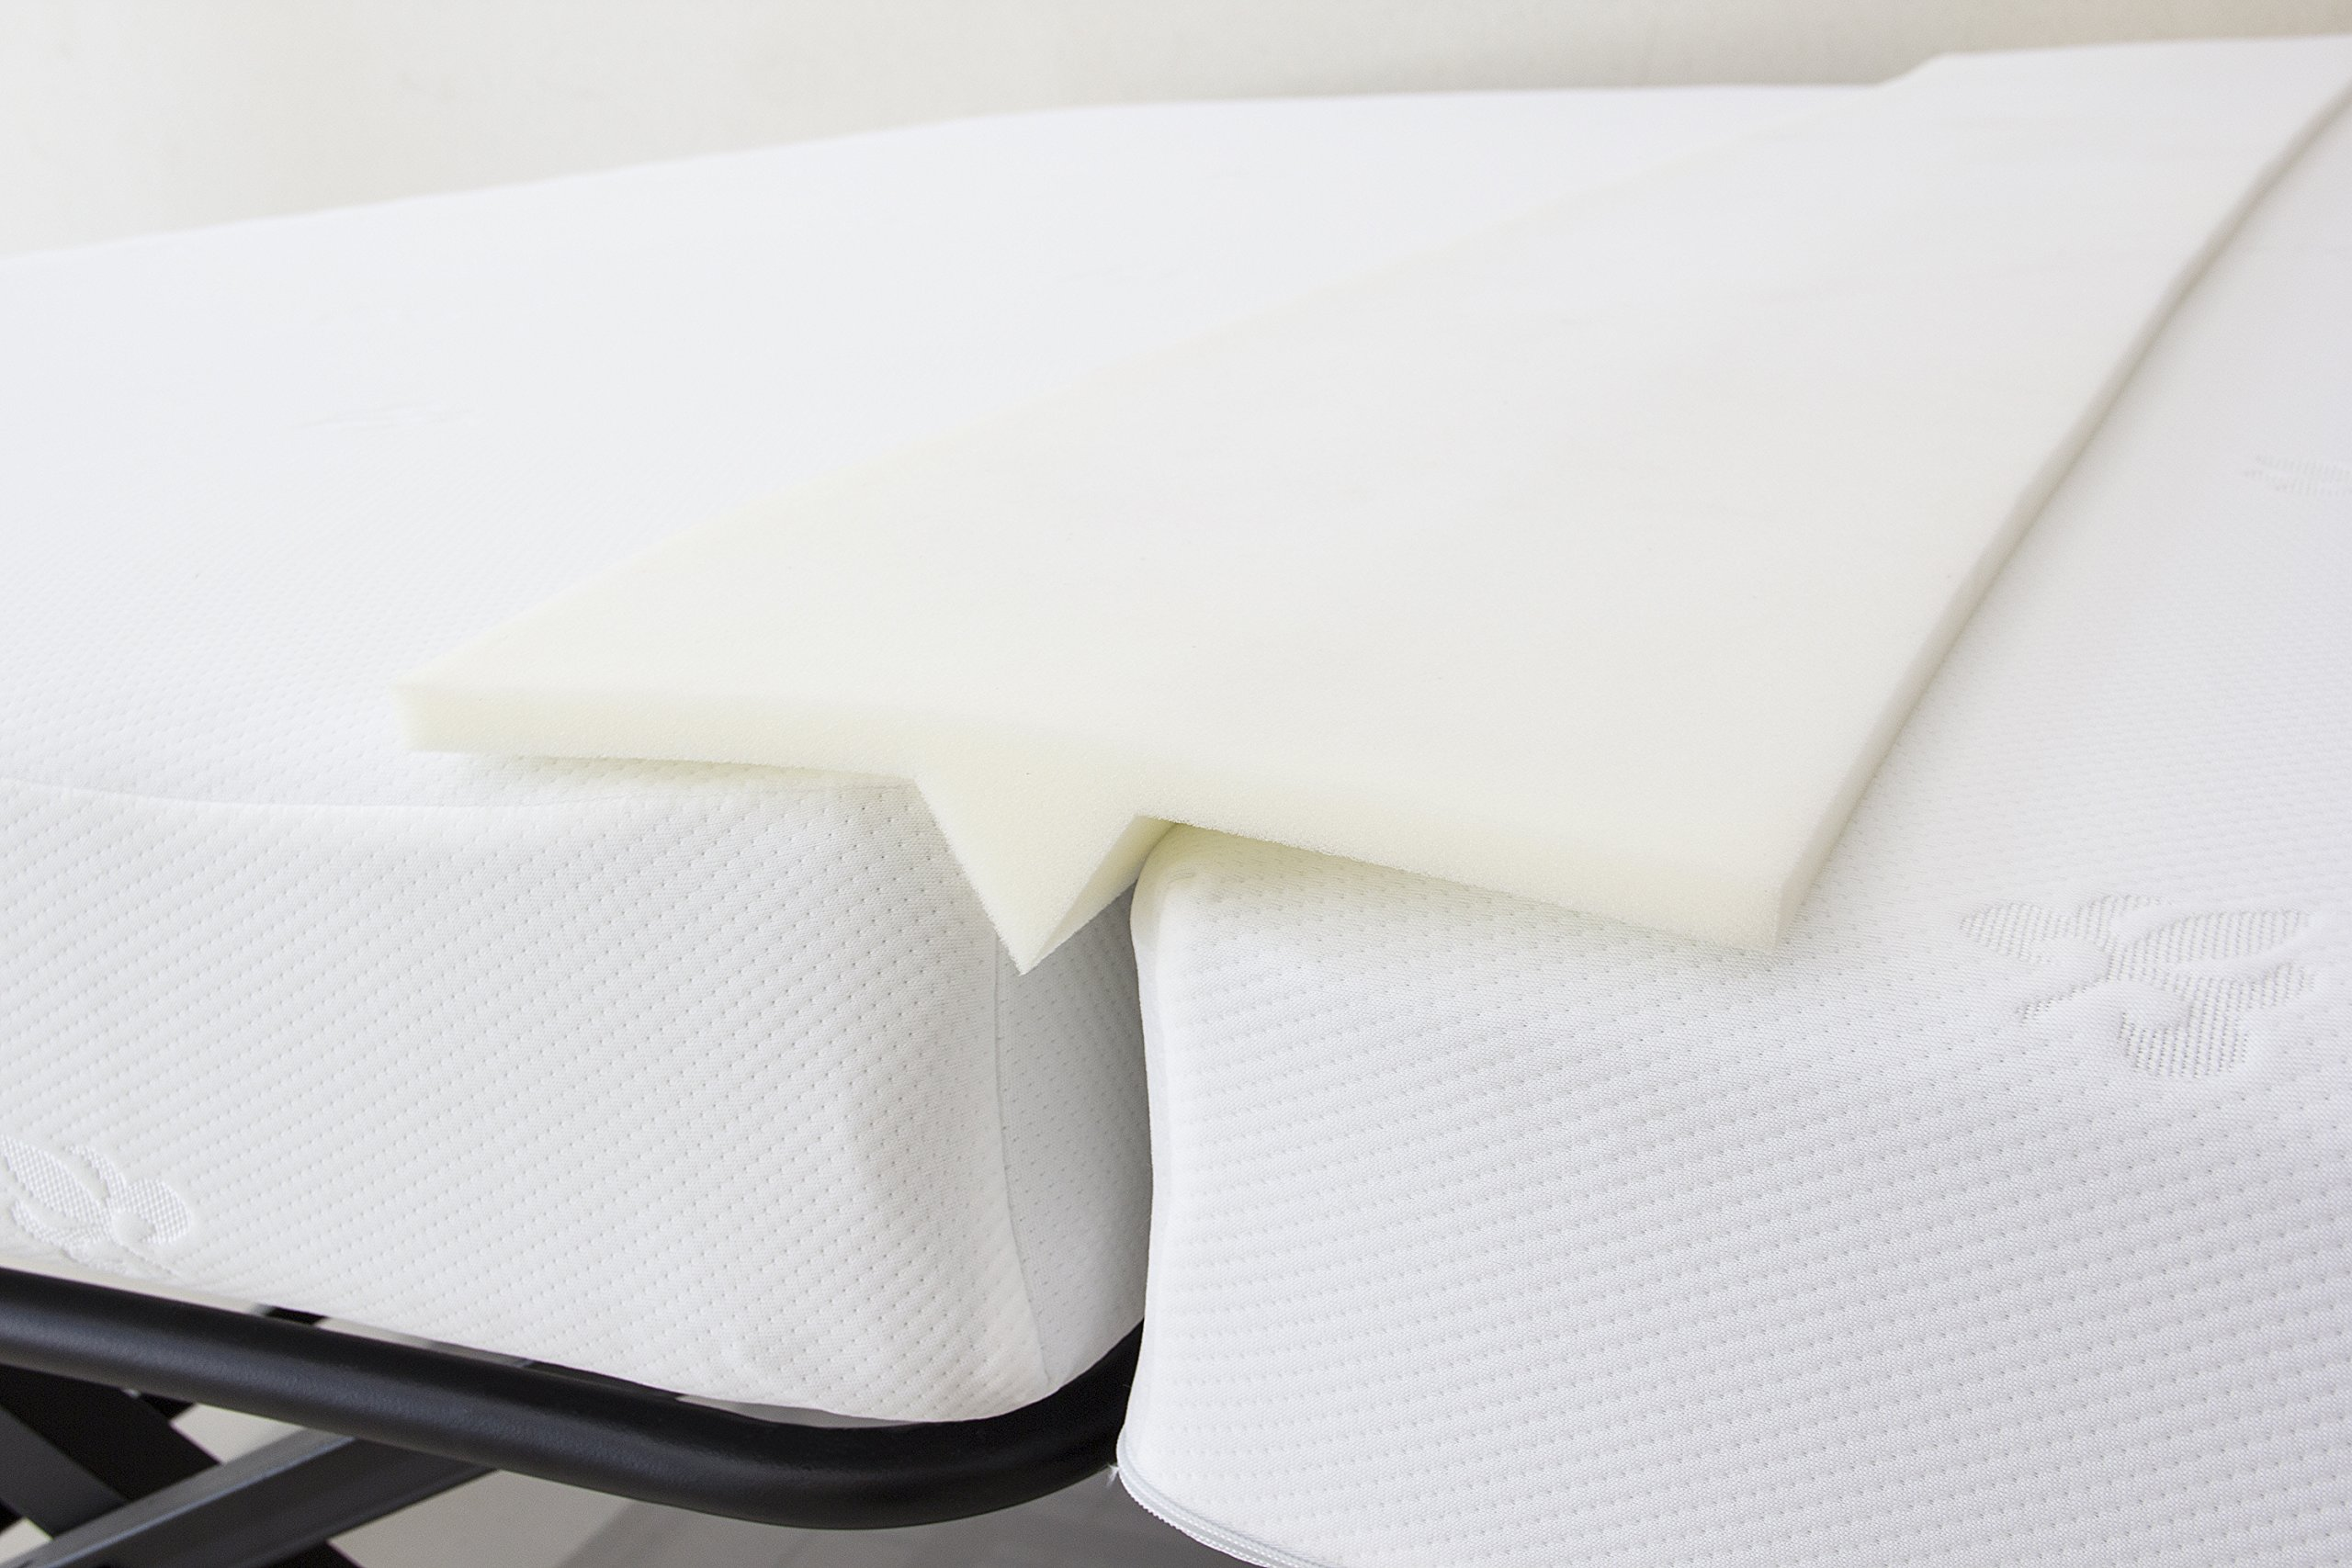 Kings Brand Furniture Foam Bed Bridge Pad Mattress Connector - Transform Two Twin XL Mattress Beds into King Size Bed